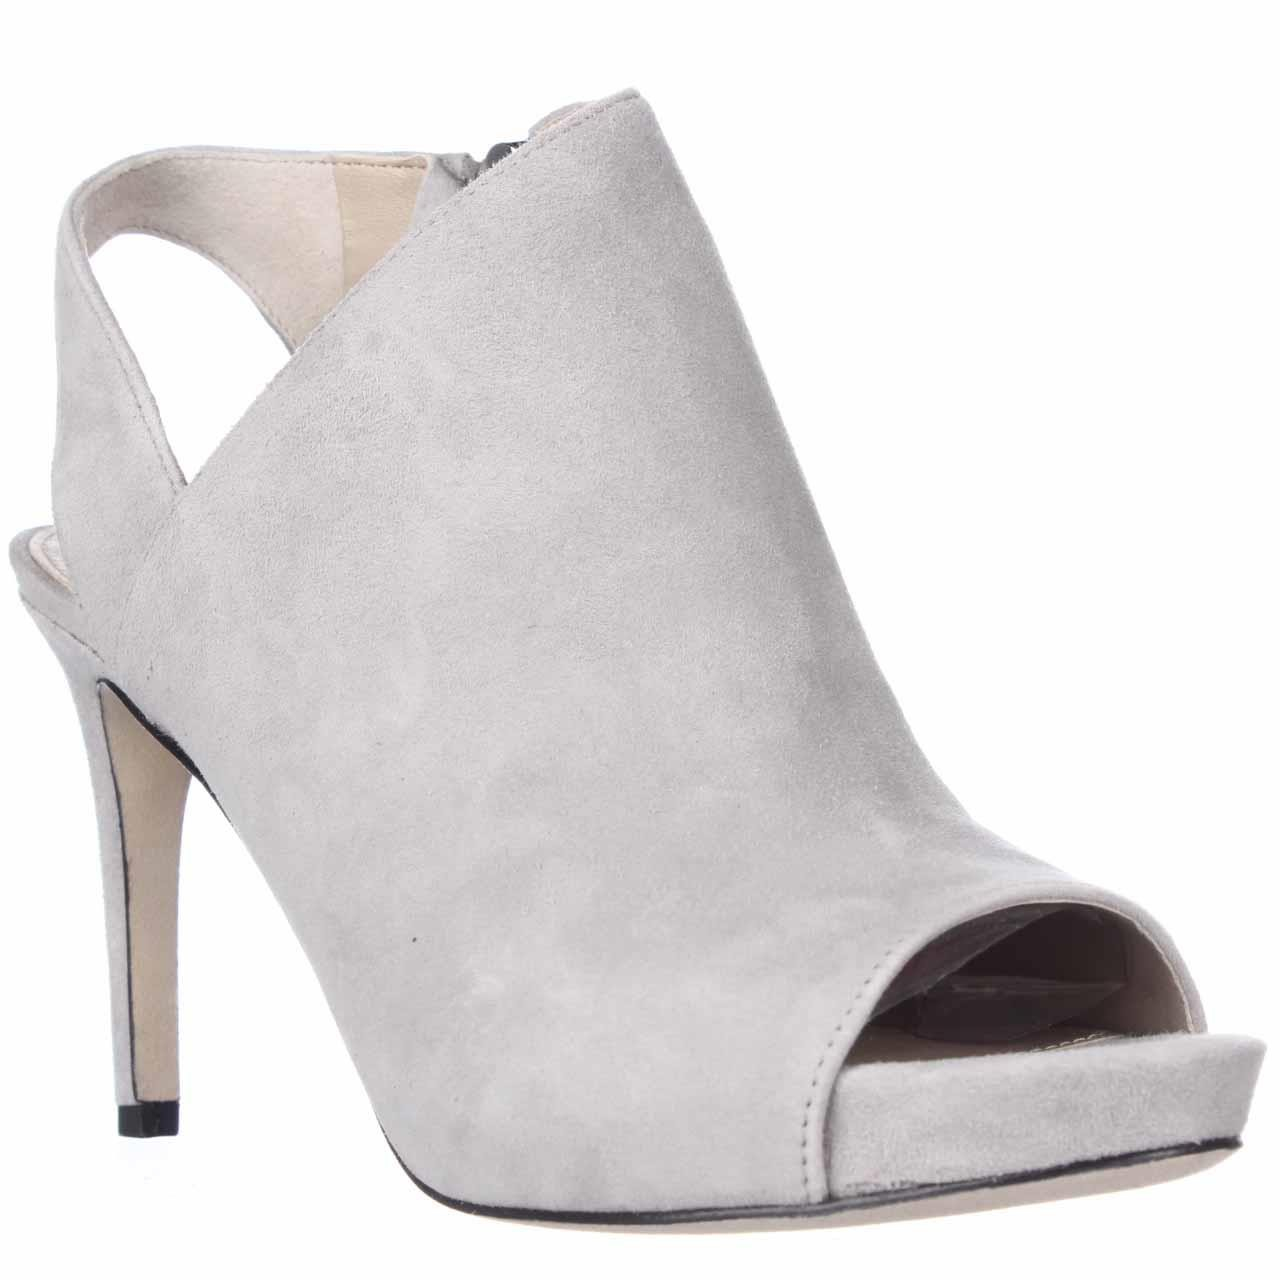 Via Spiga Nariah Peep Toe Heel Booties In Gray Lyst